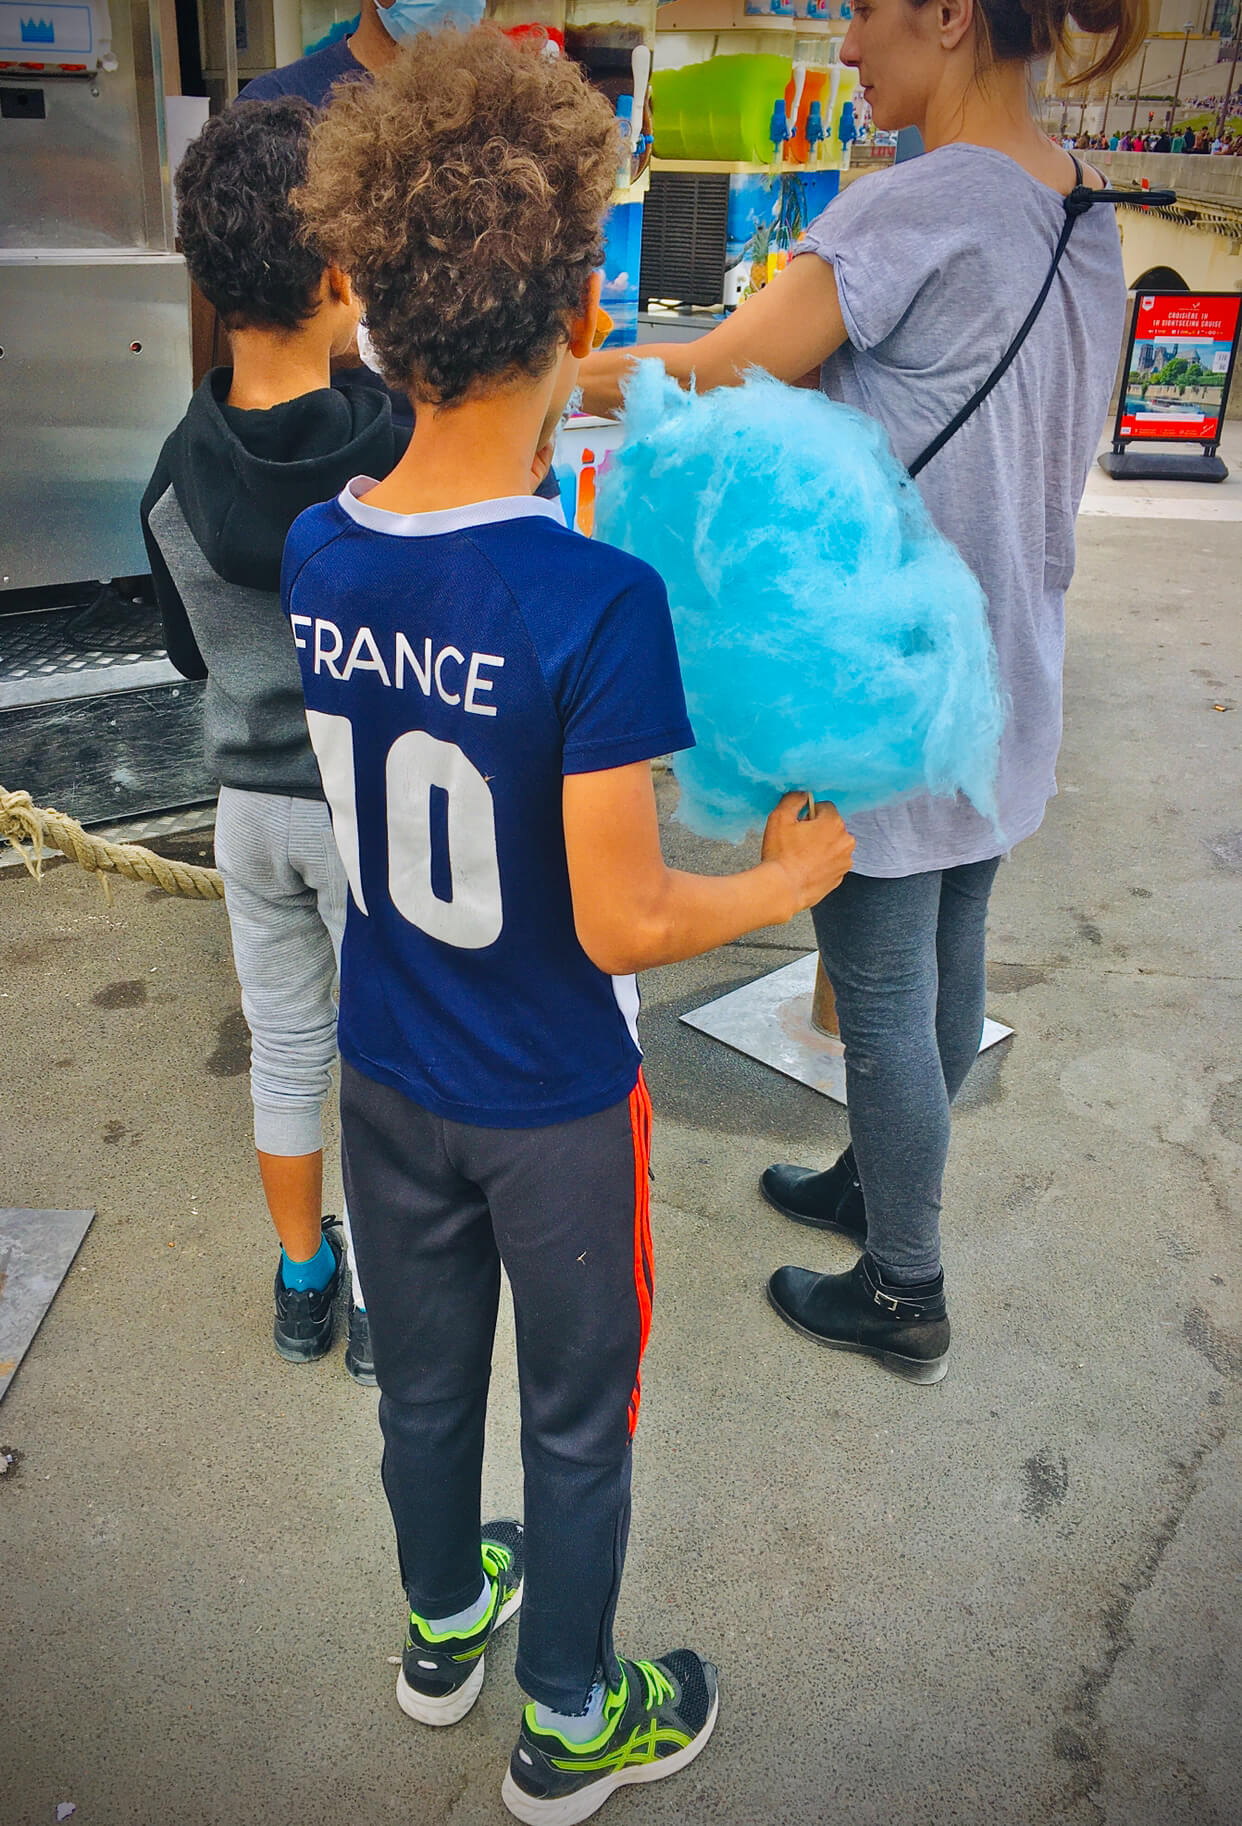 A boy with a jersey that says France 10 eats a big, blue puff of cotton candy